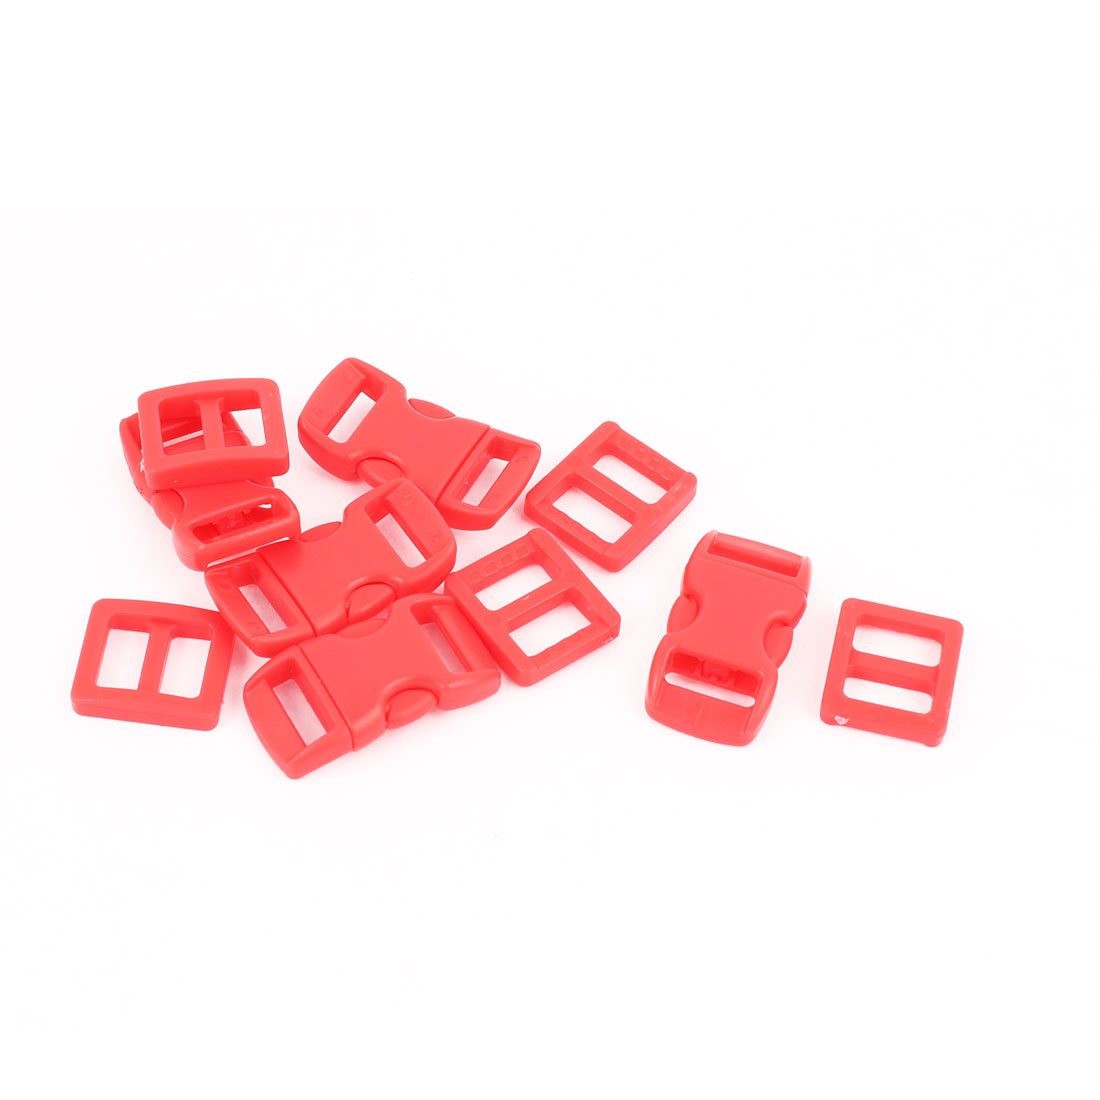 Belt Connecting Plastic Side Quick Release Clasp Buckles 10-11mm Webbing Strap Band Red 5pcs